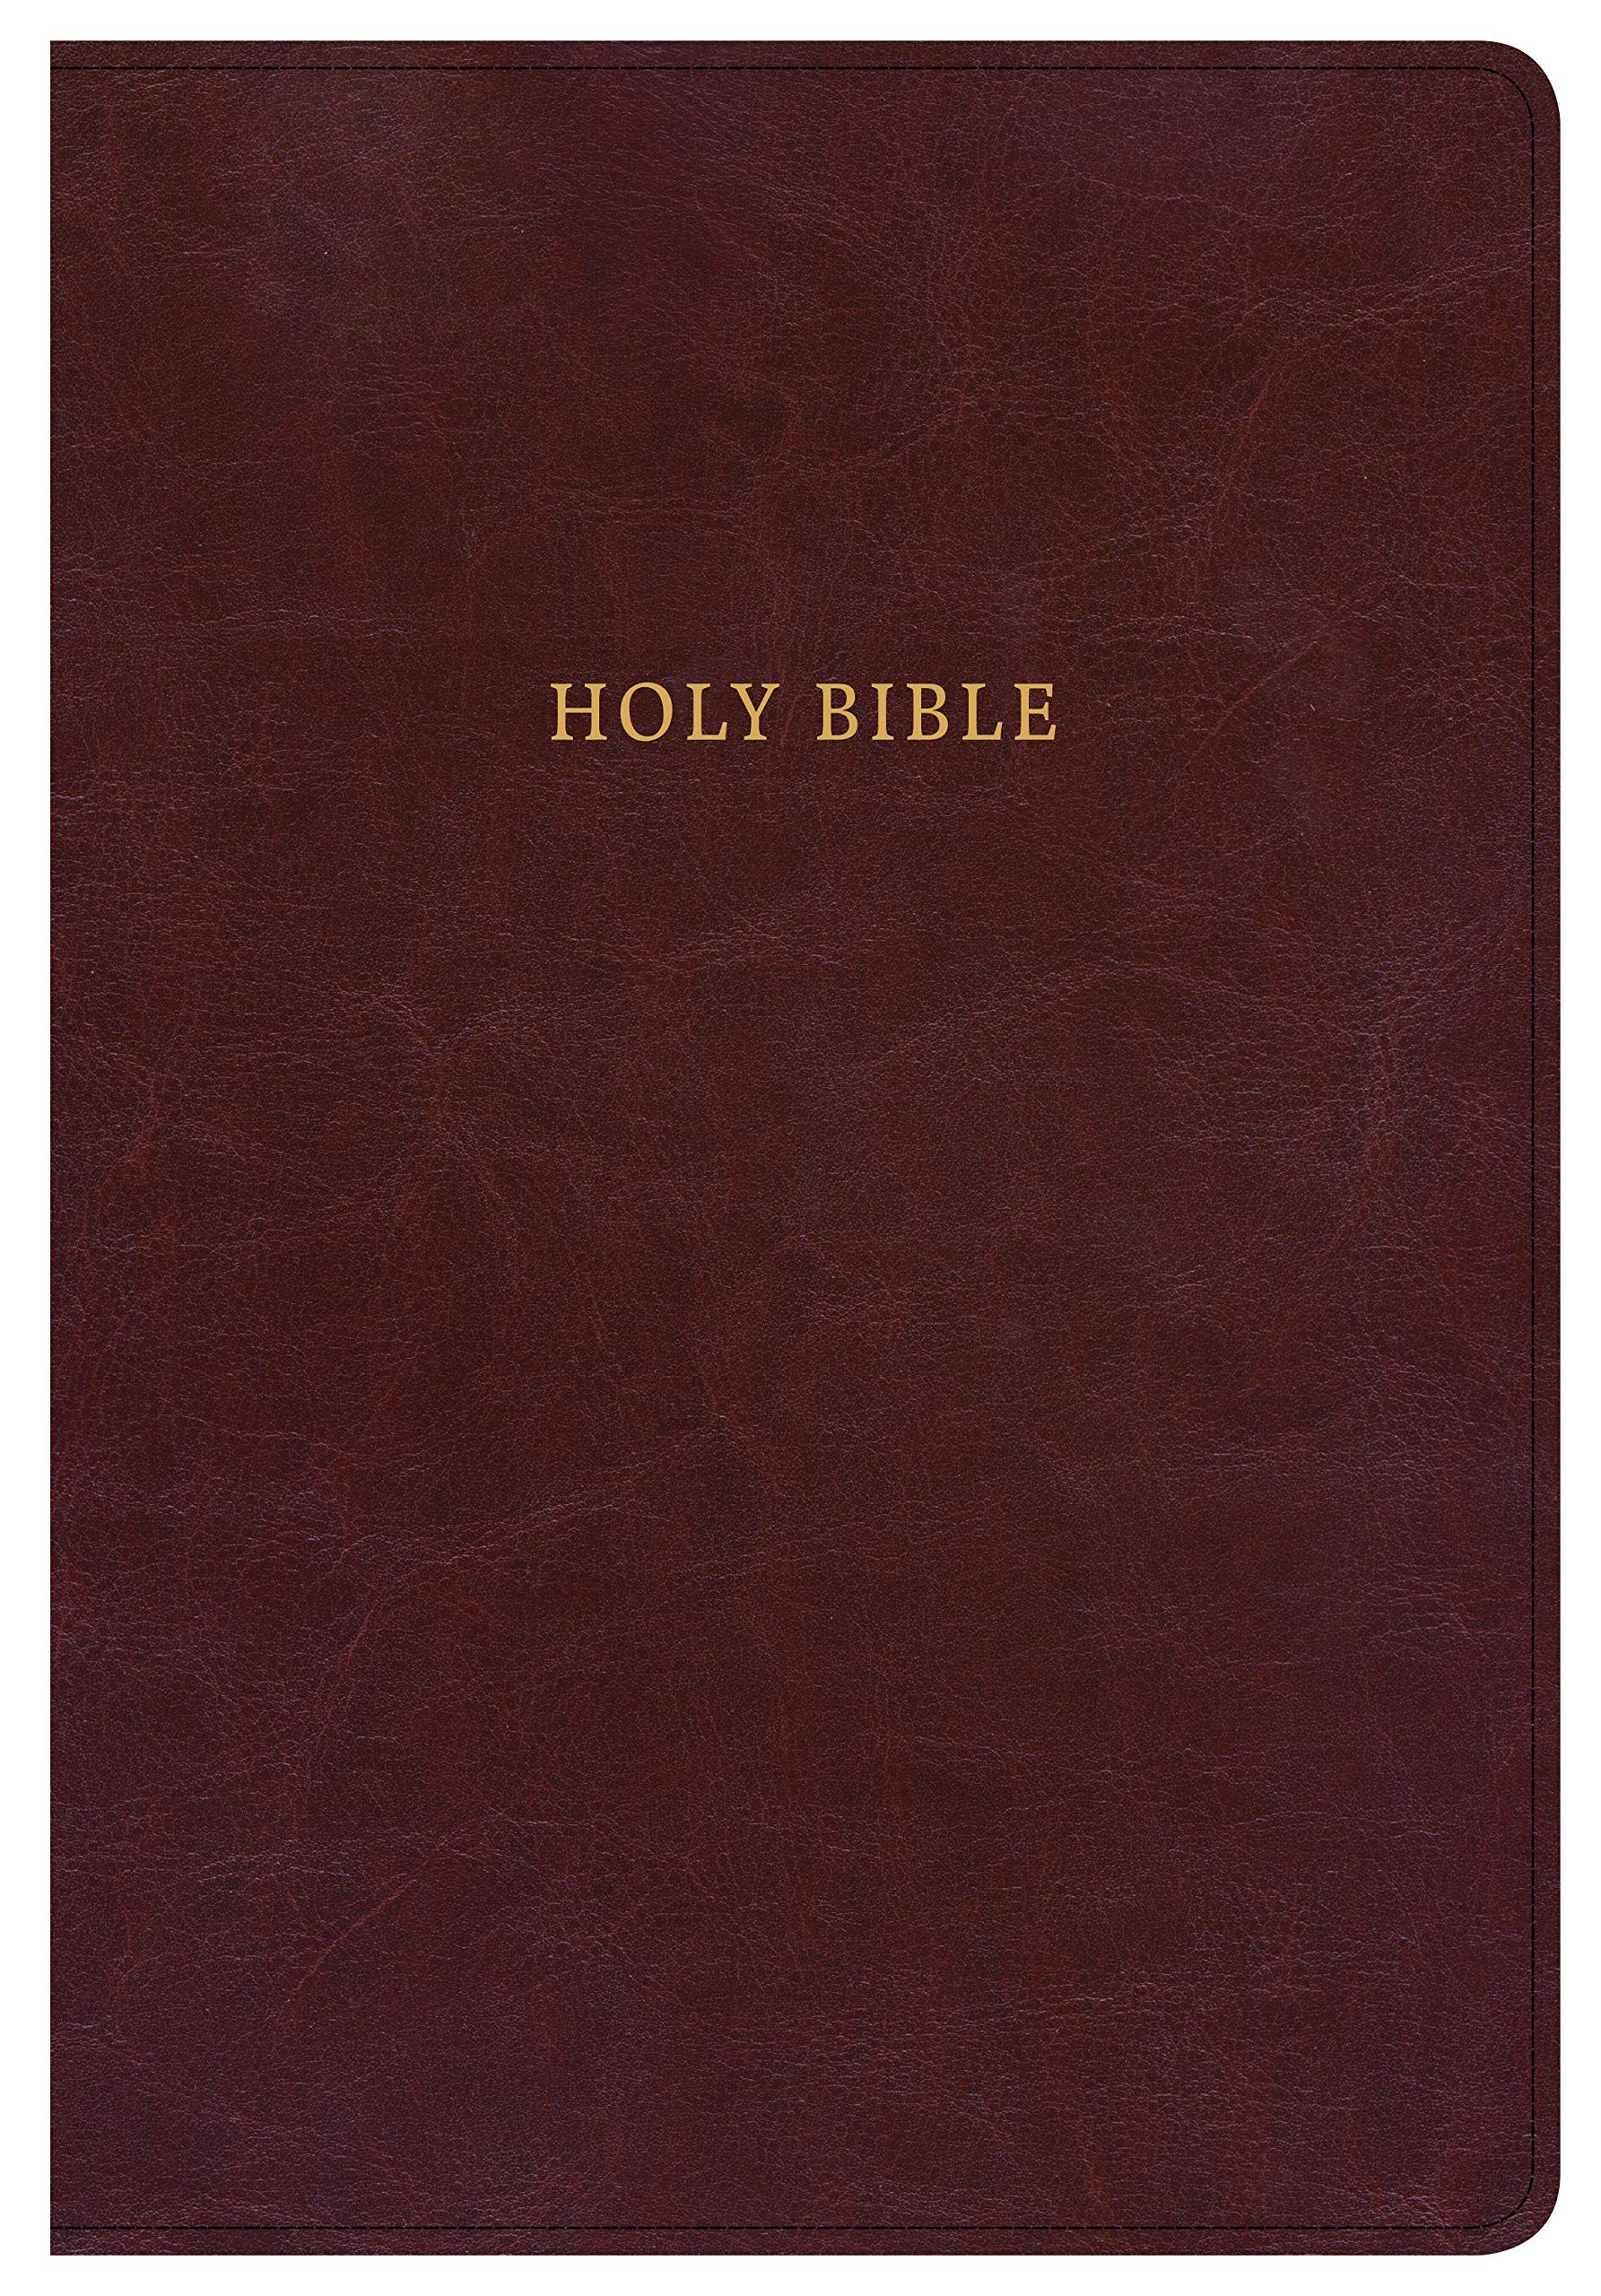 NKJV Super Giant Print Reference Bible, Classic Burgundy LeatherTouch, Indexed